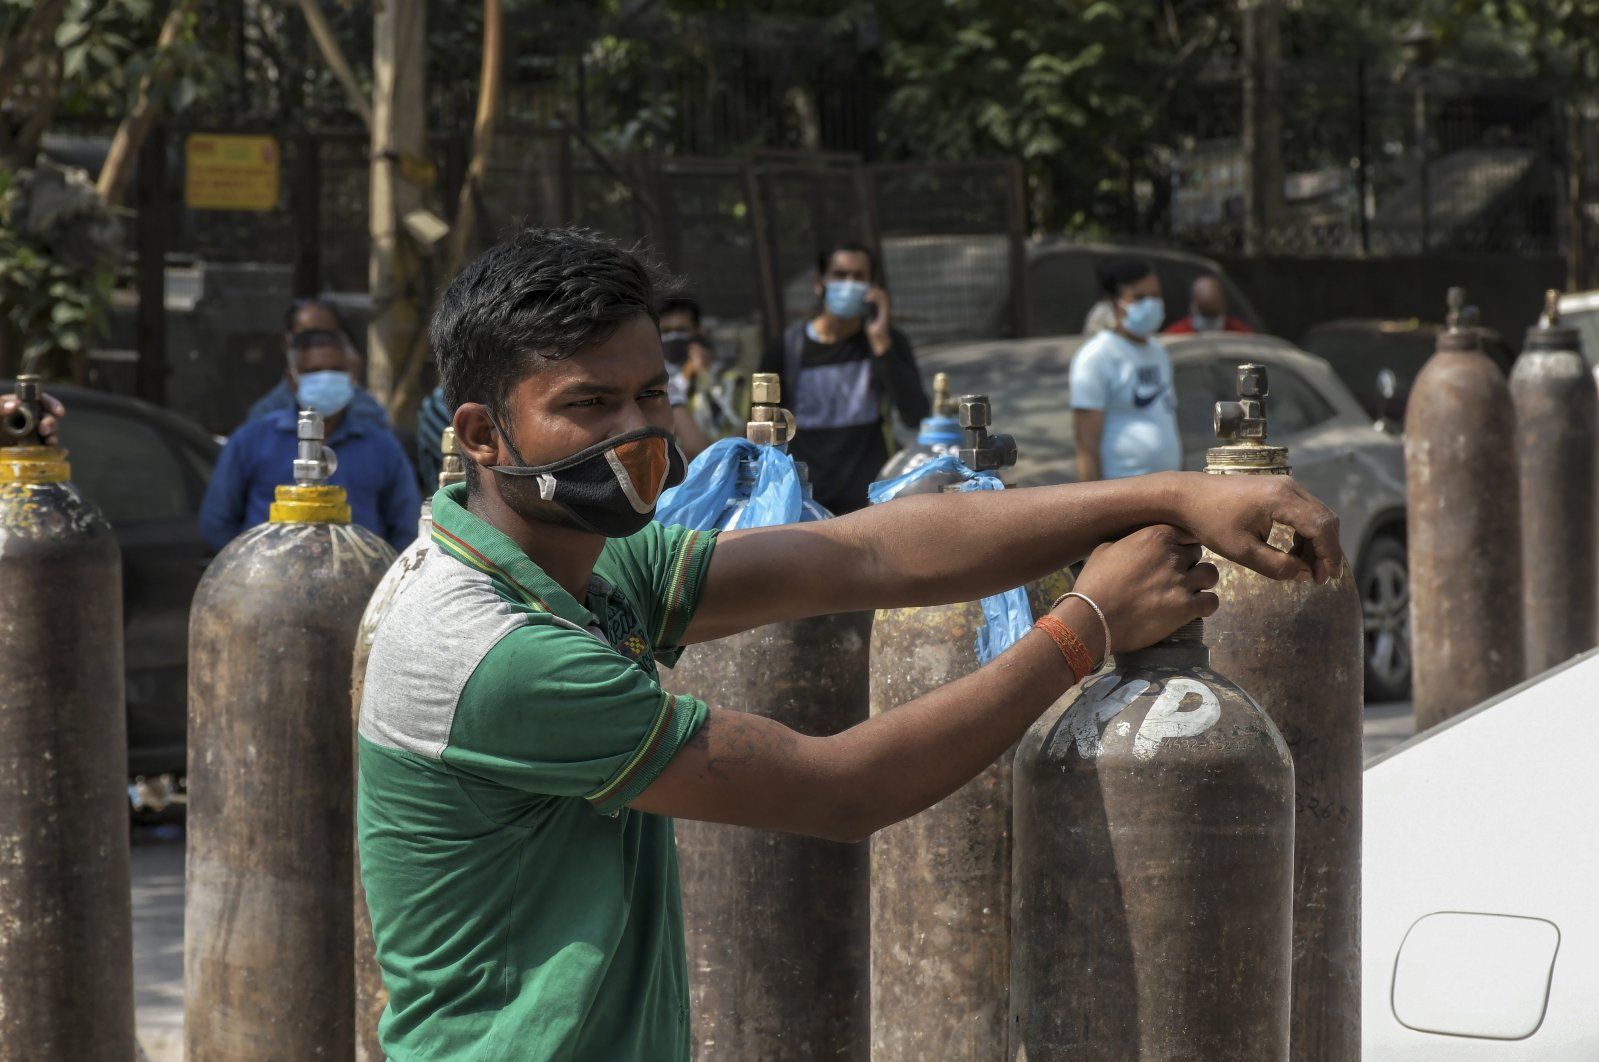 Family members of COVID-19 patients wait in line to refill their oxygen cylinders at the Mayapuri area in New Delhi, India, May 3, 2021. (AP Photo)